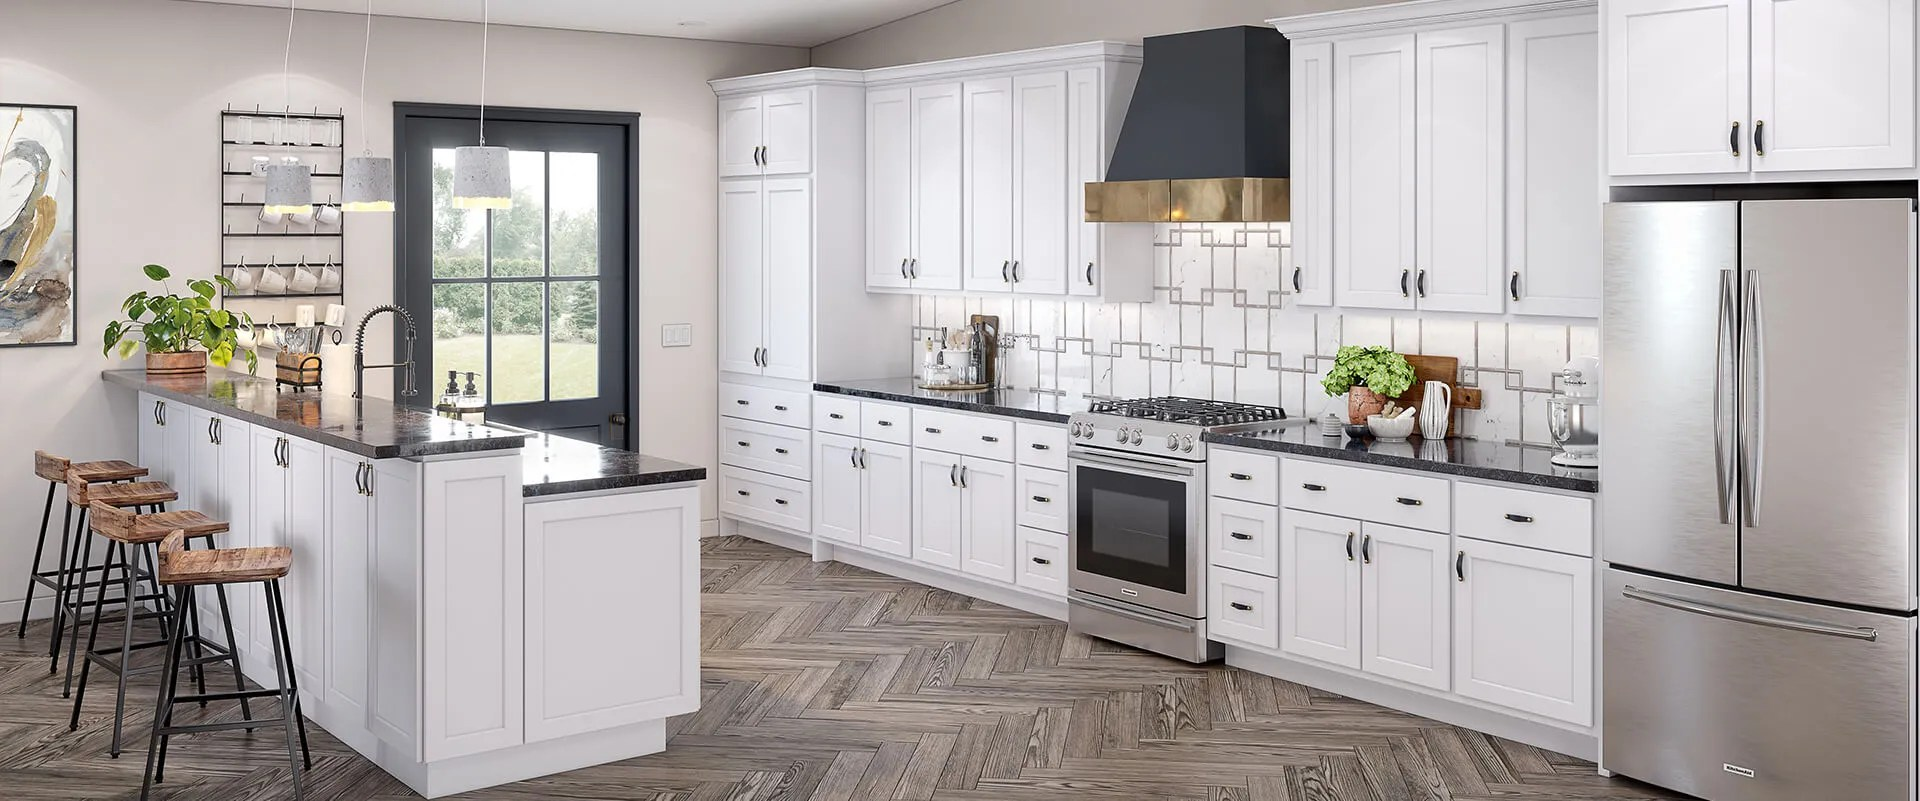 Modern White Kitchen Cabinets White Kitchen Cabinets For Sale Prime Cabinetry